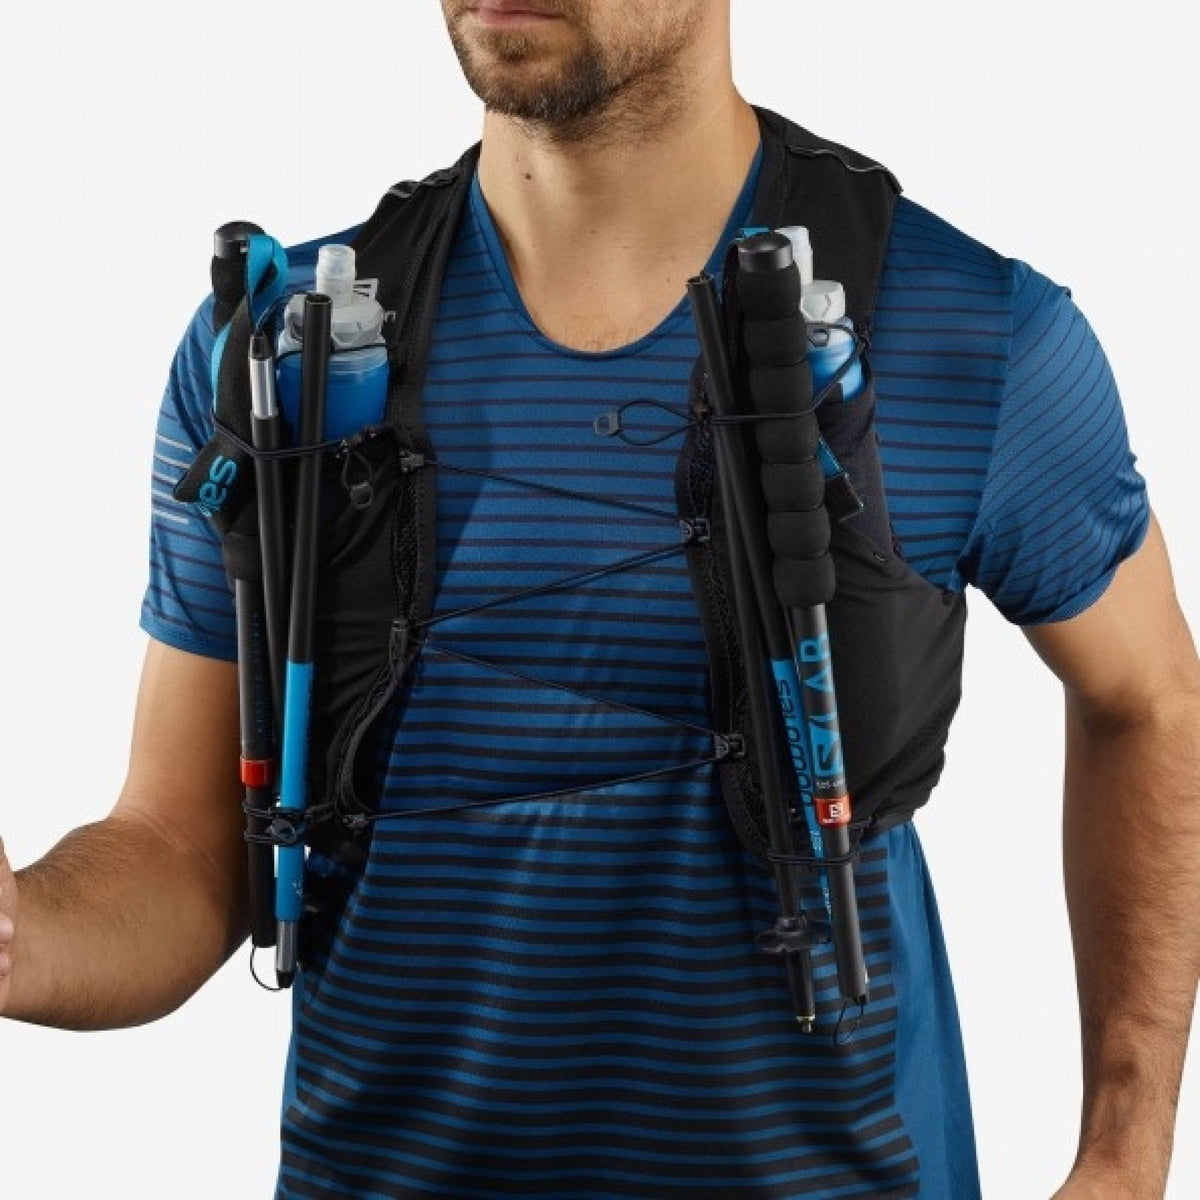 Salomon Advanced Skin 5 Hydration Pack